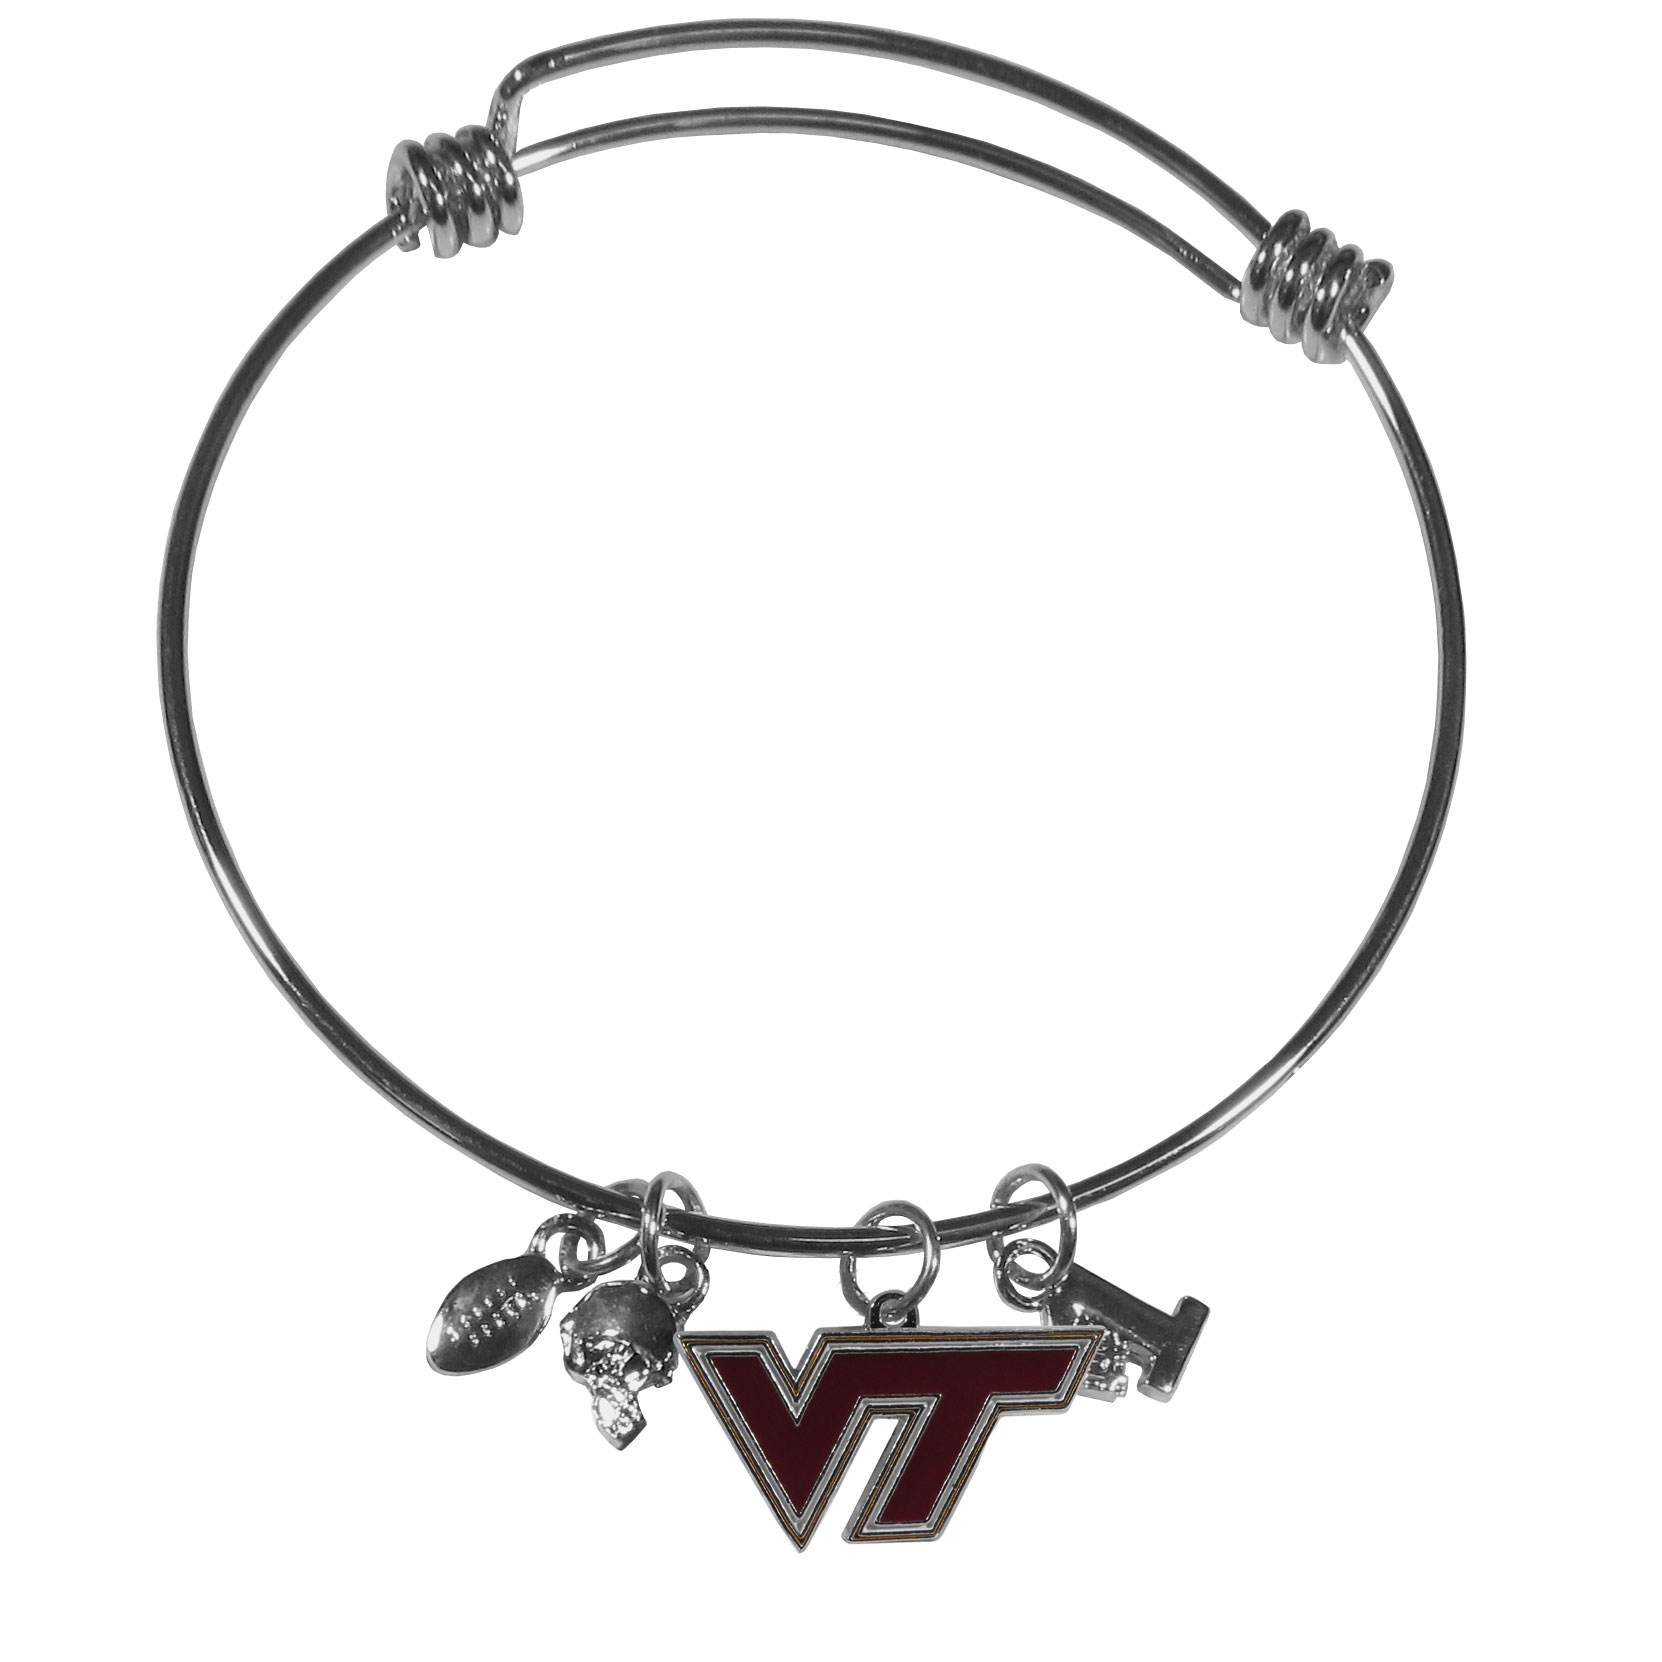 Virginia Tech Hokies Charm Bangle Bracelet - Adjustable wire bracelets are all the rage and this Virginia Tech Hokies bracelet matches the popular trend with your beloved team. The bracelet features 4 charms in total, each feature exceptional detail and the team charm has enameled team colors.